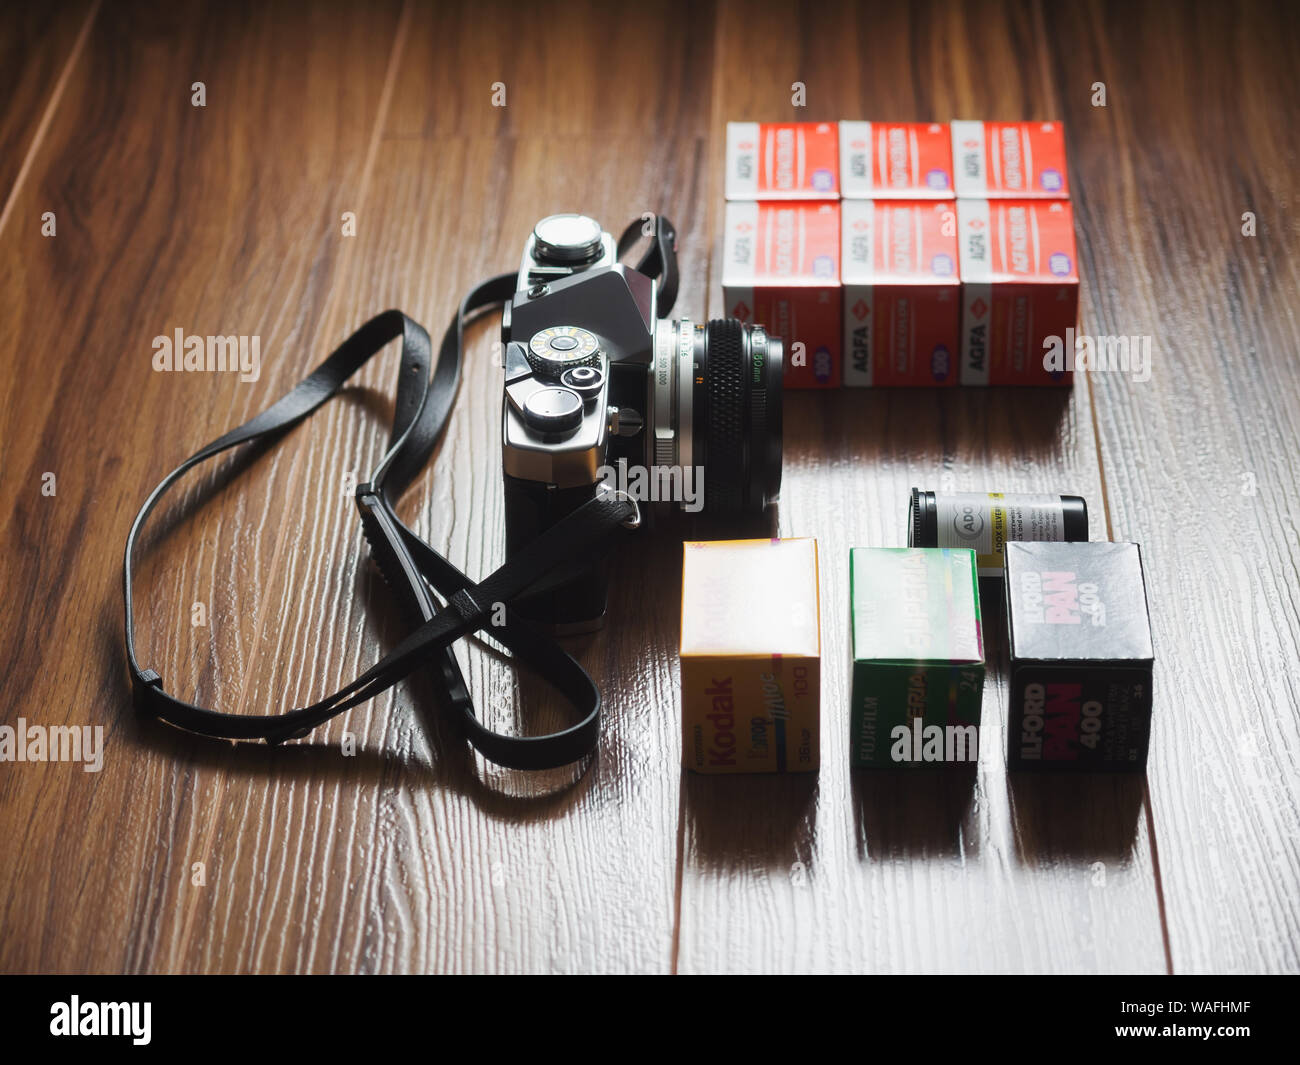 Moscow, Russia - June 17, 2016: Analogue Photography. Fujifilm, Agfacolor, Kodak, ILFORD and Adox 35mm film rolls and vintage Olympus OM-1 SLR camera Stock Photo